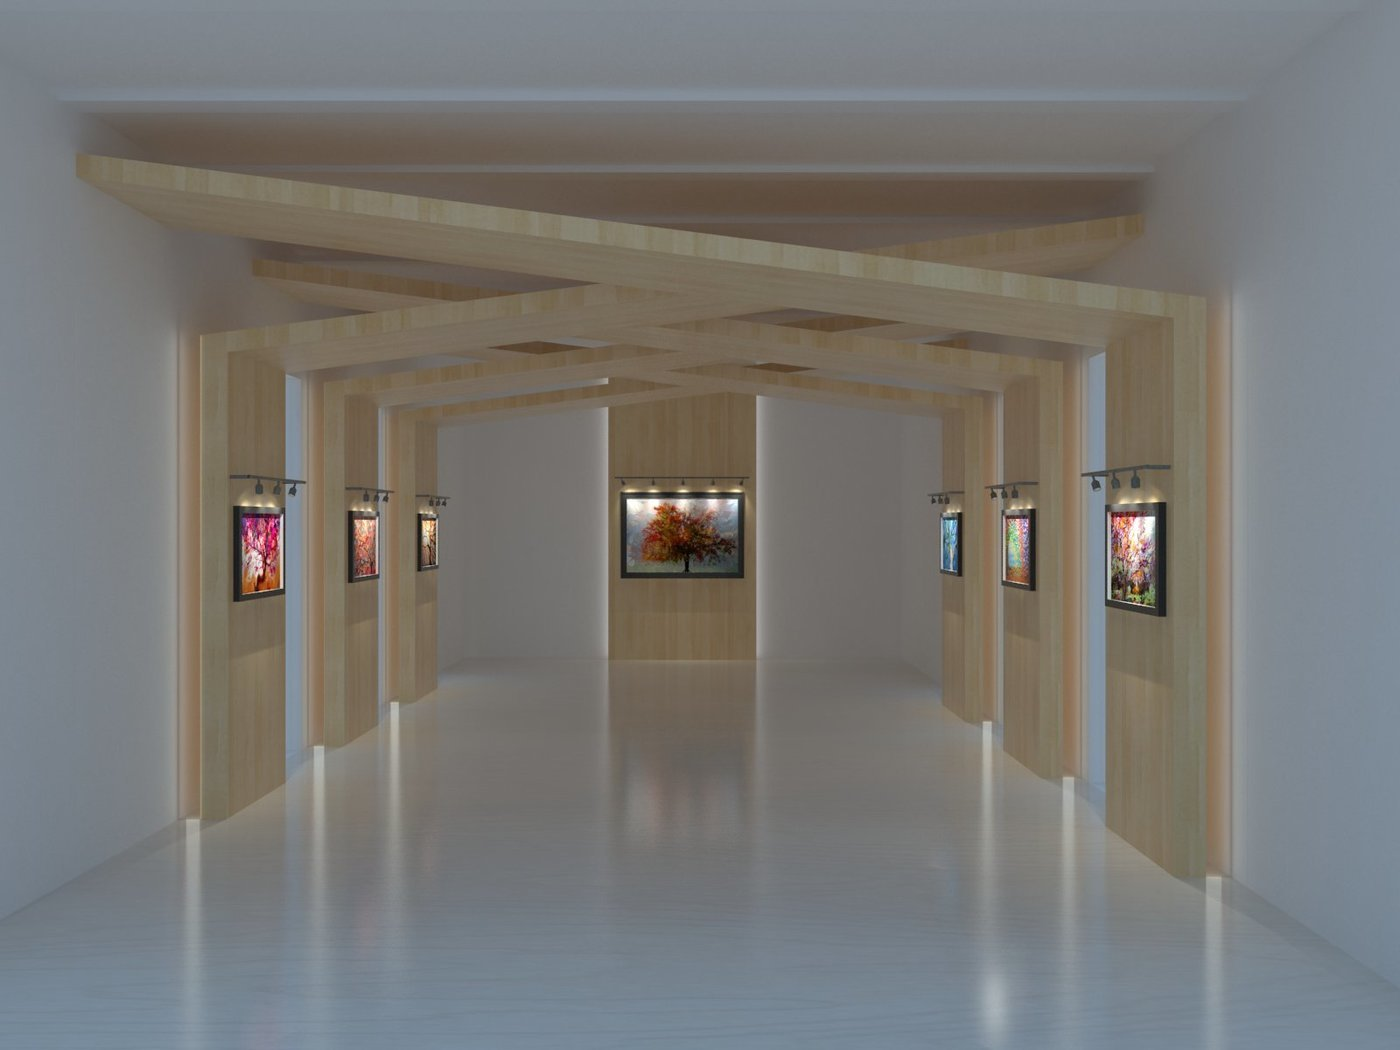 Art Gallery Design Concept By Floramie Cata At Coroflot Com,Chase Credit Card Designs